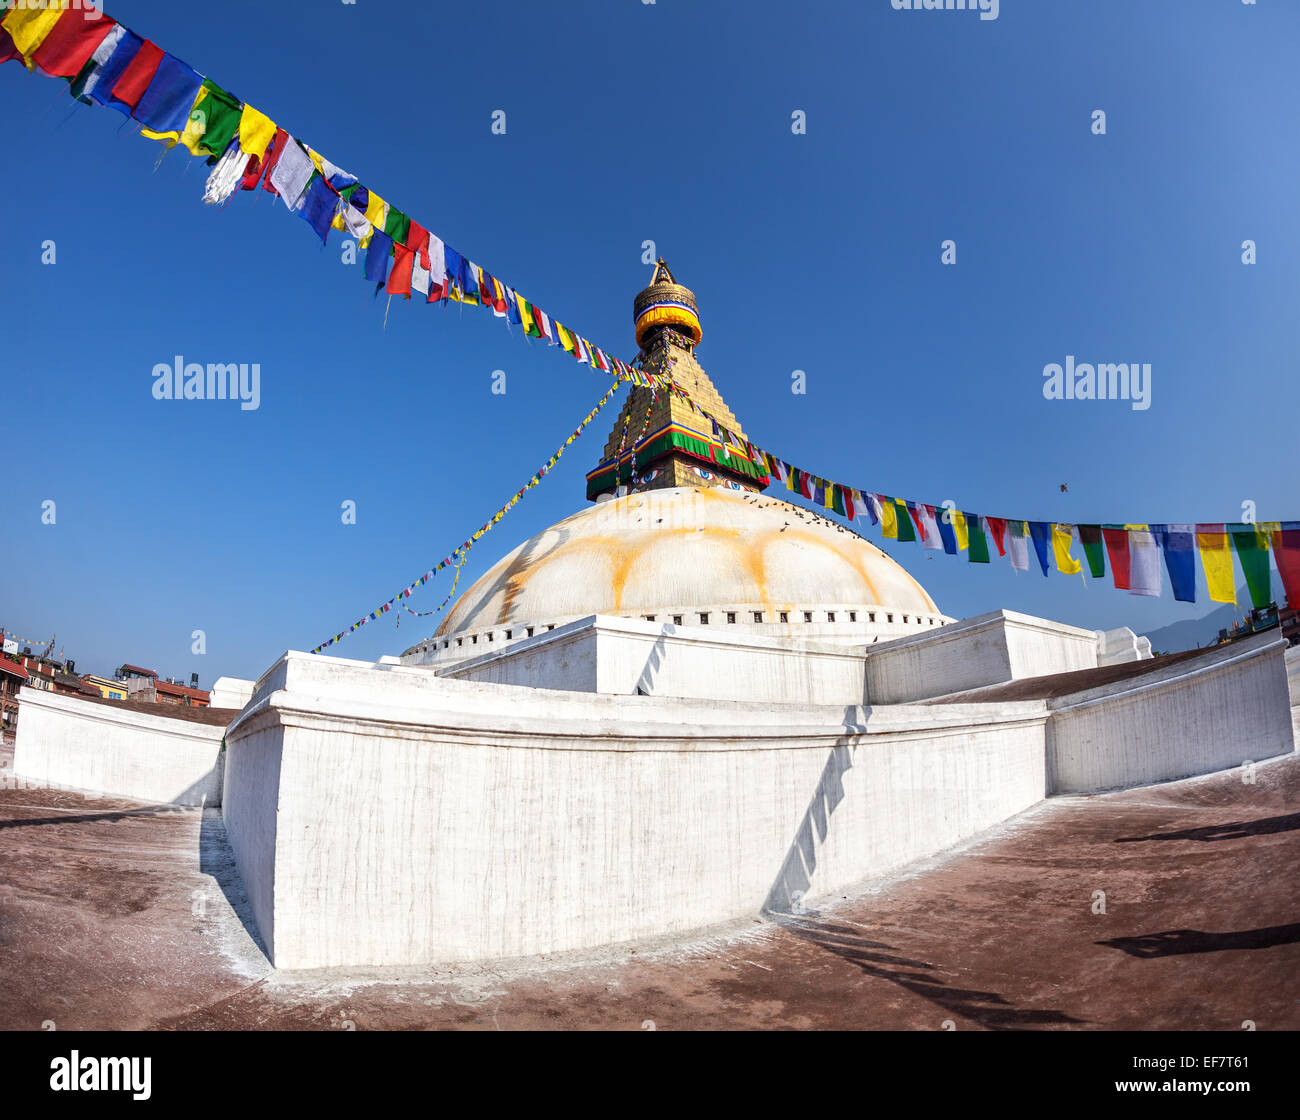 Bodhnath stupa with colorful prayer flags at blue sky in Kathmandu valley, Nepal - Stock Image